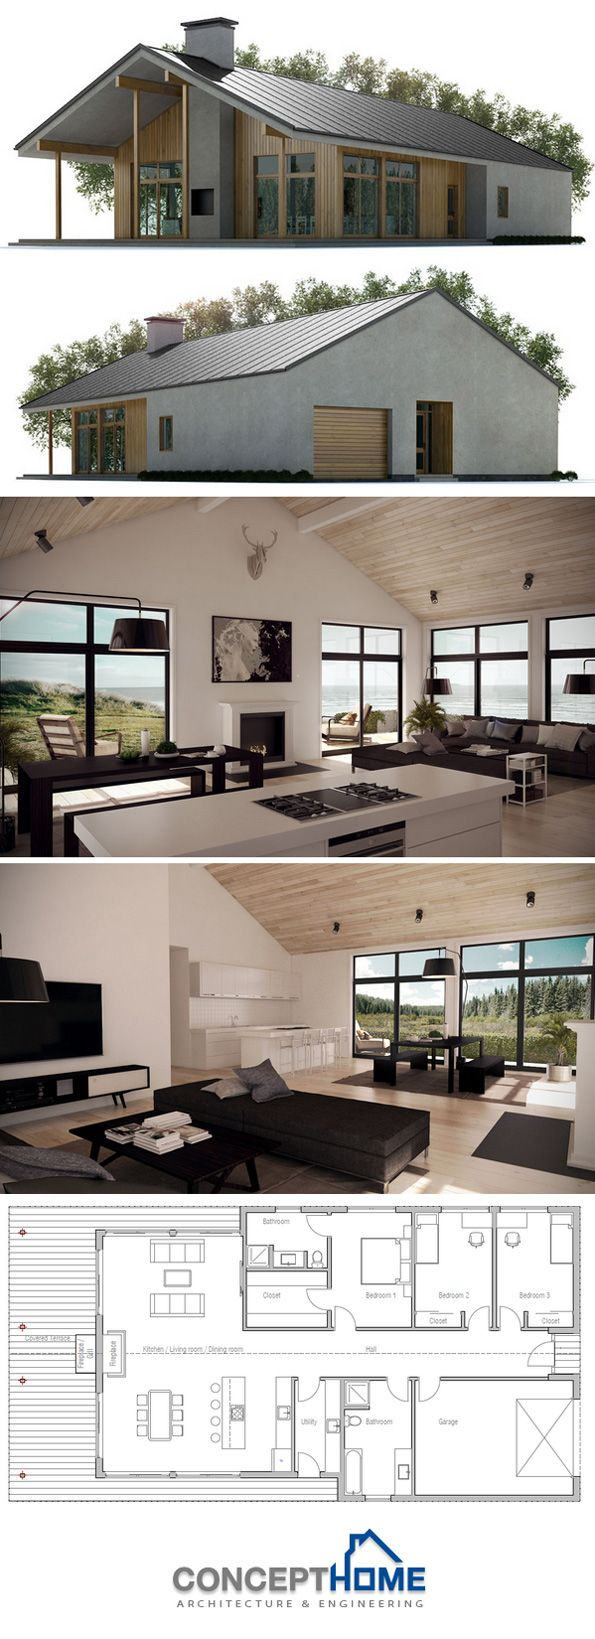 kitchen dining, living layout, perfect..add dropped living